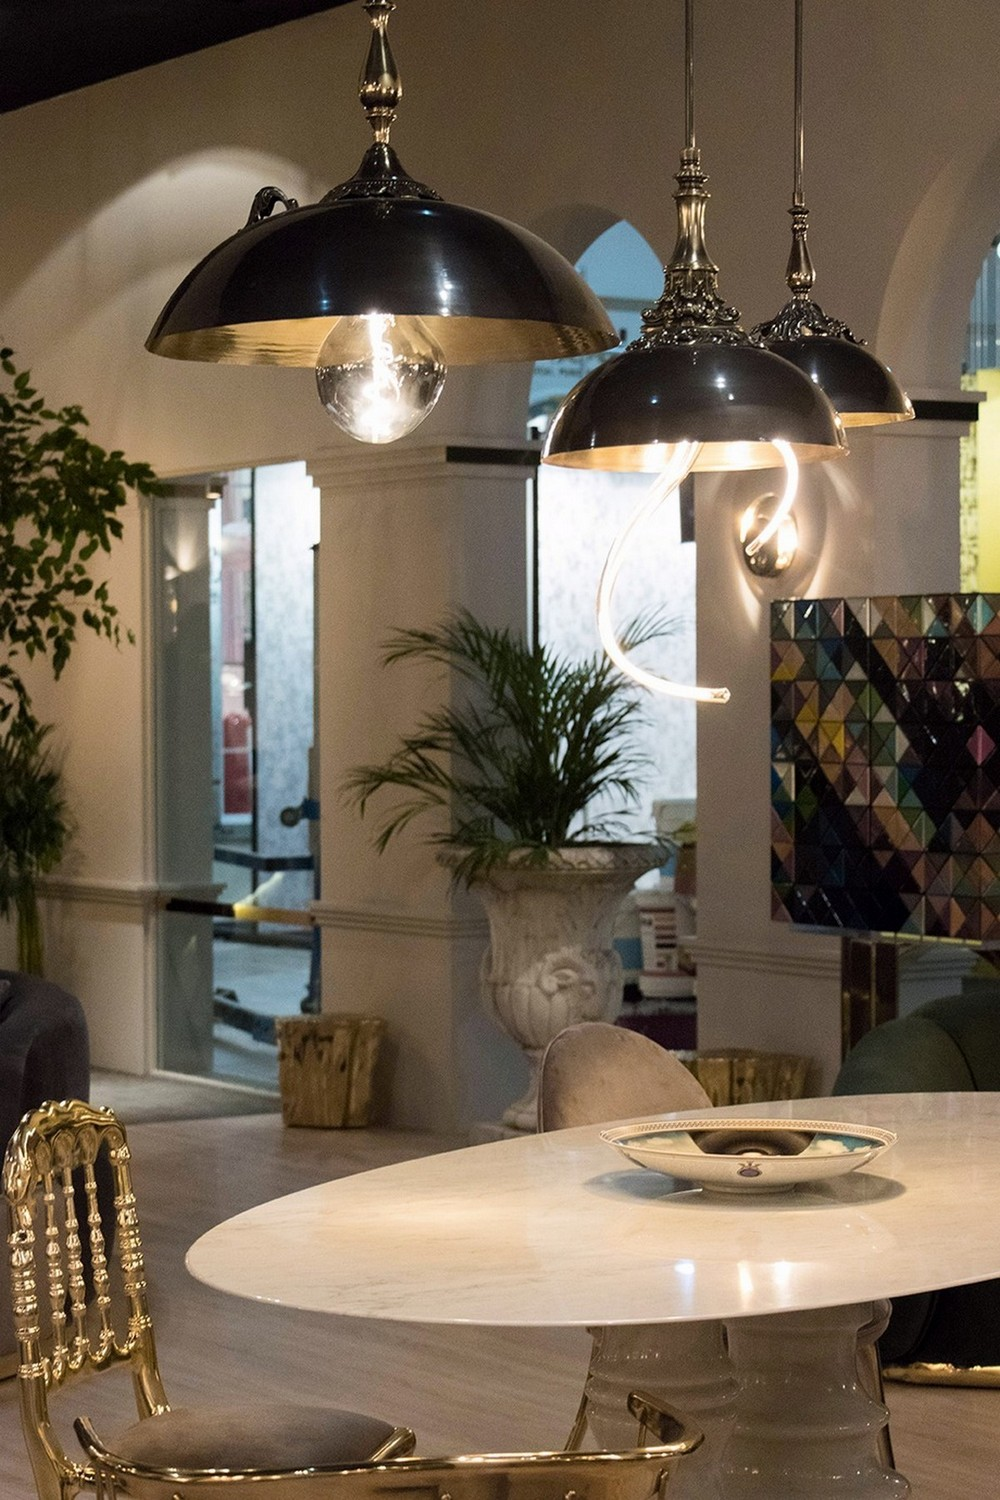 Improve Your Home Decoration with Marvelous Lighting Trends for 2020 9 lighting trends for 2020 Improve Your Home Decoration with Marvelous Lighting Trends for 2020 Improve Your Home Decoration with Marvelous Lighting Trends for 2020 9